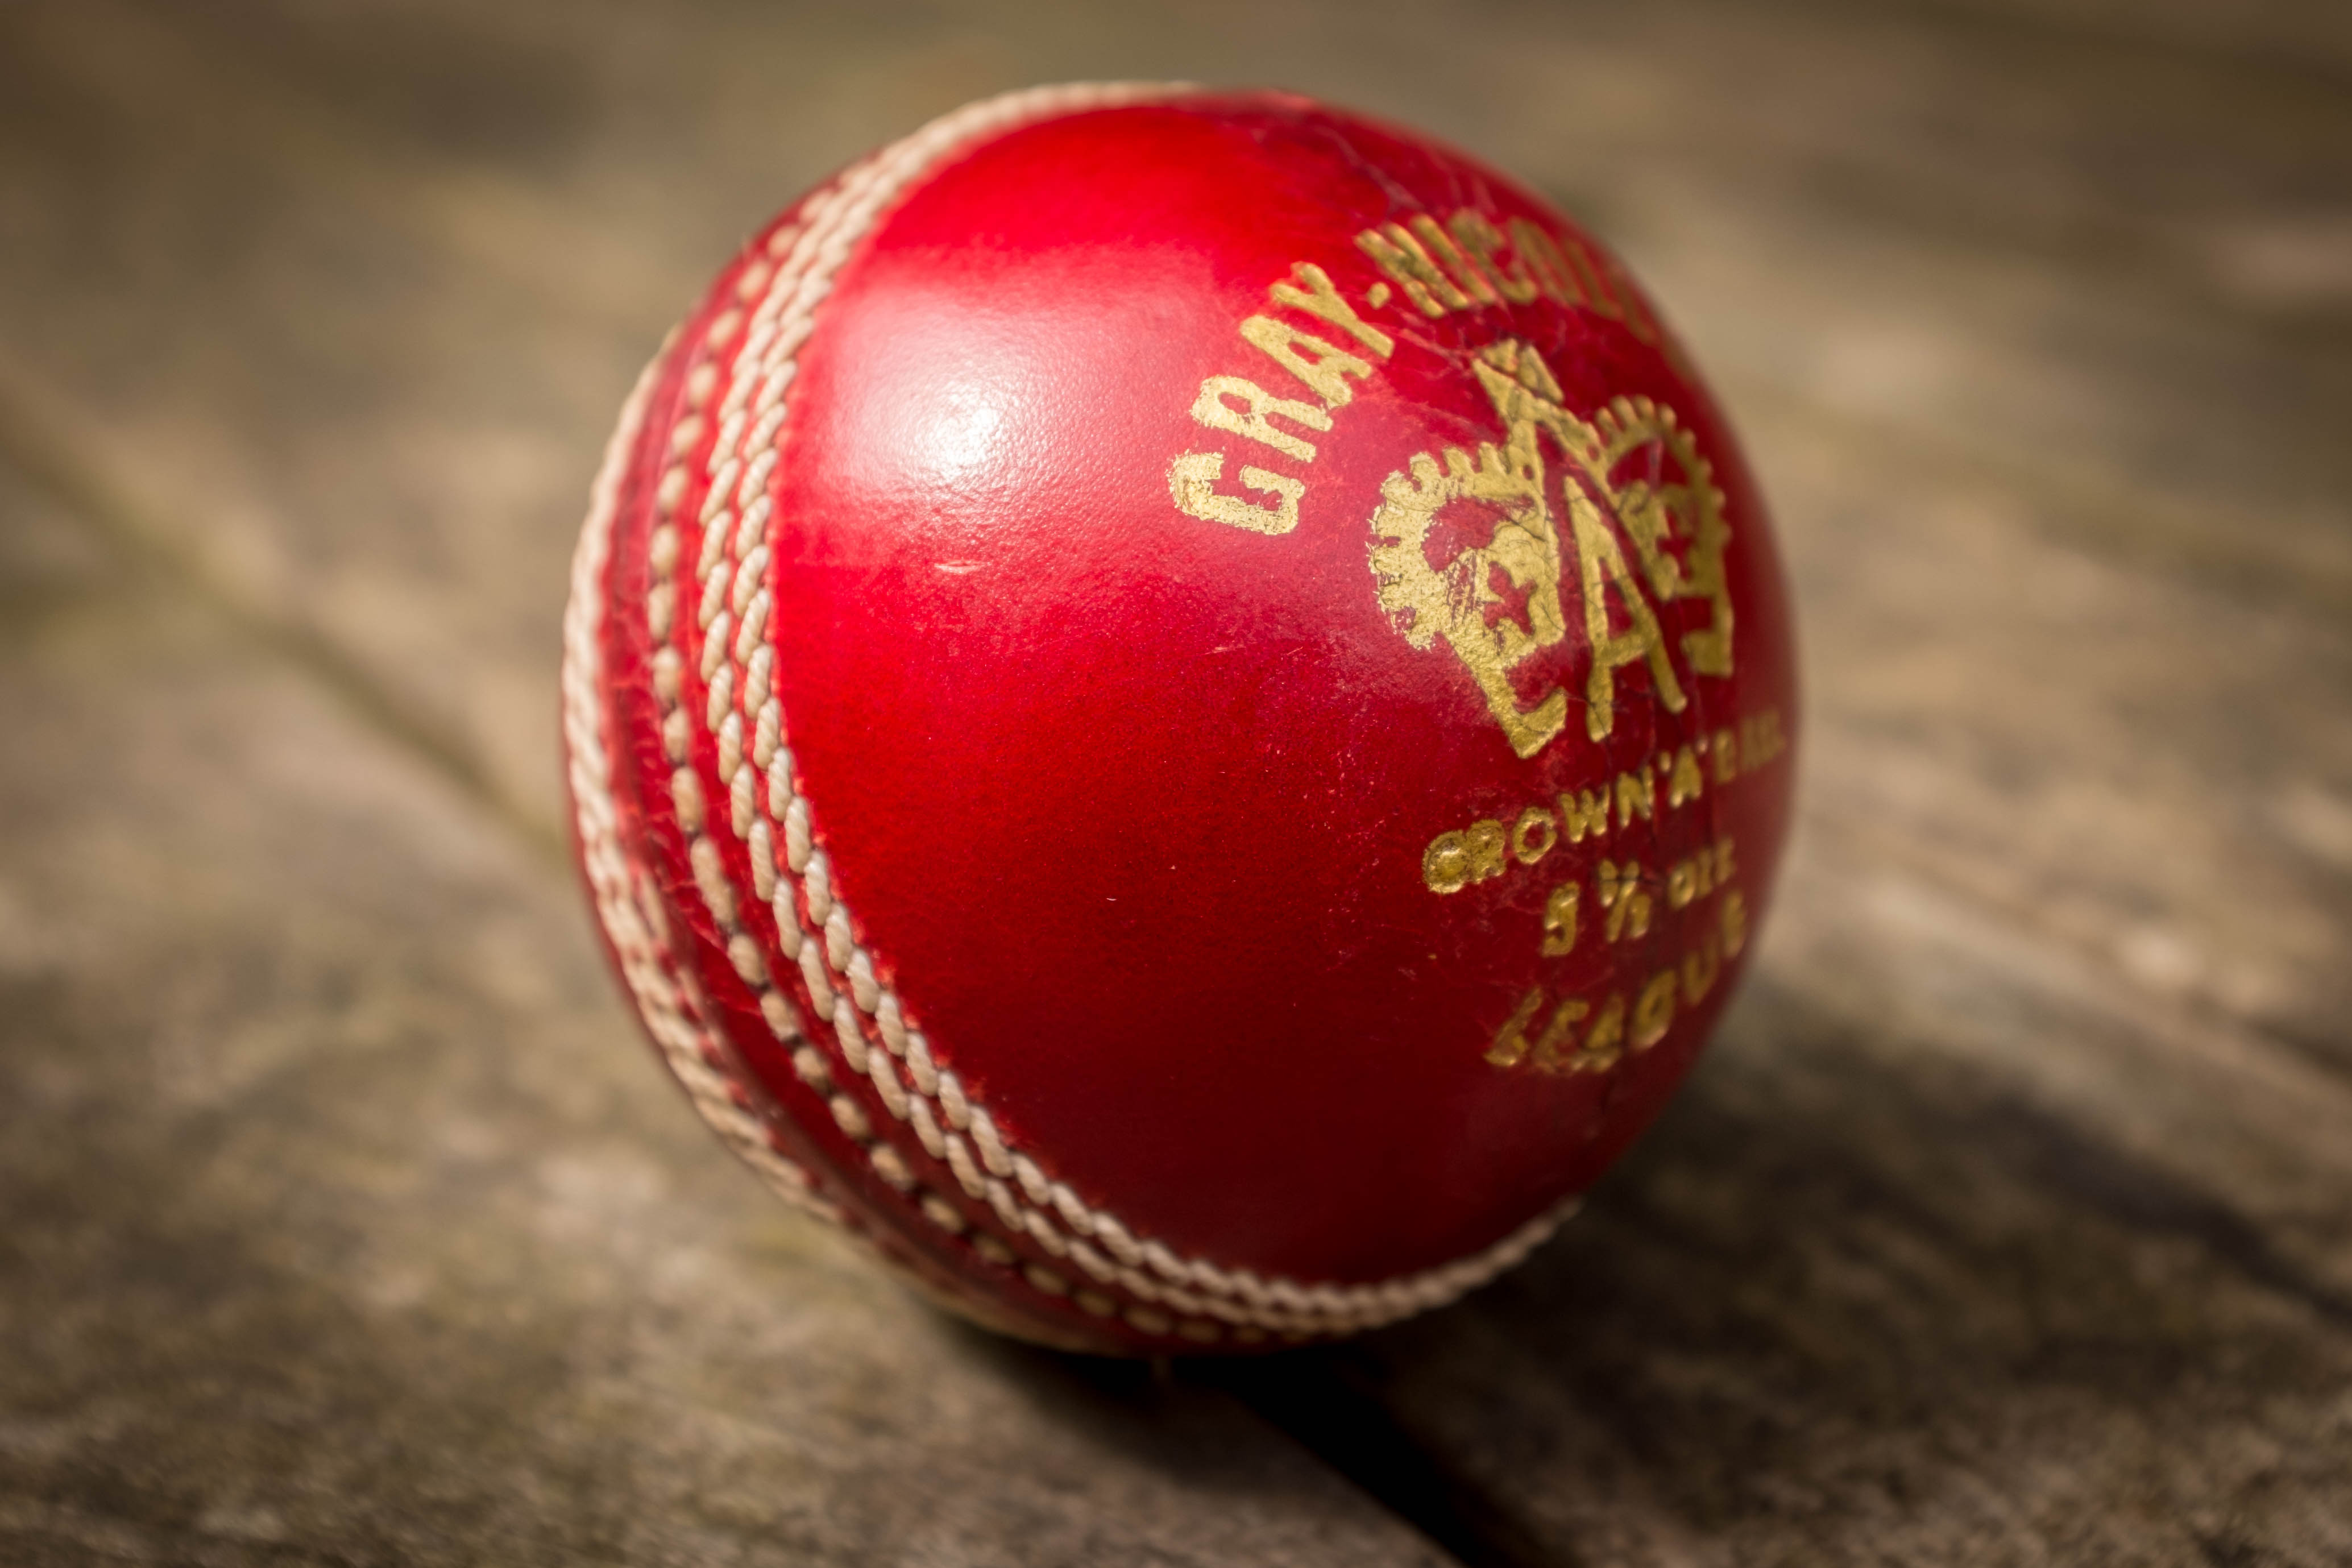 Cricket SA appoint new independent non-executive directors - Sports Leo